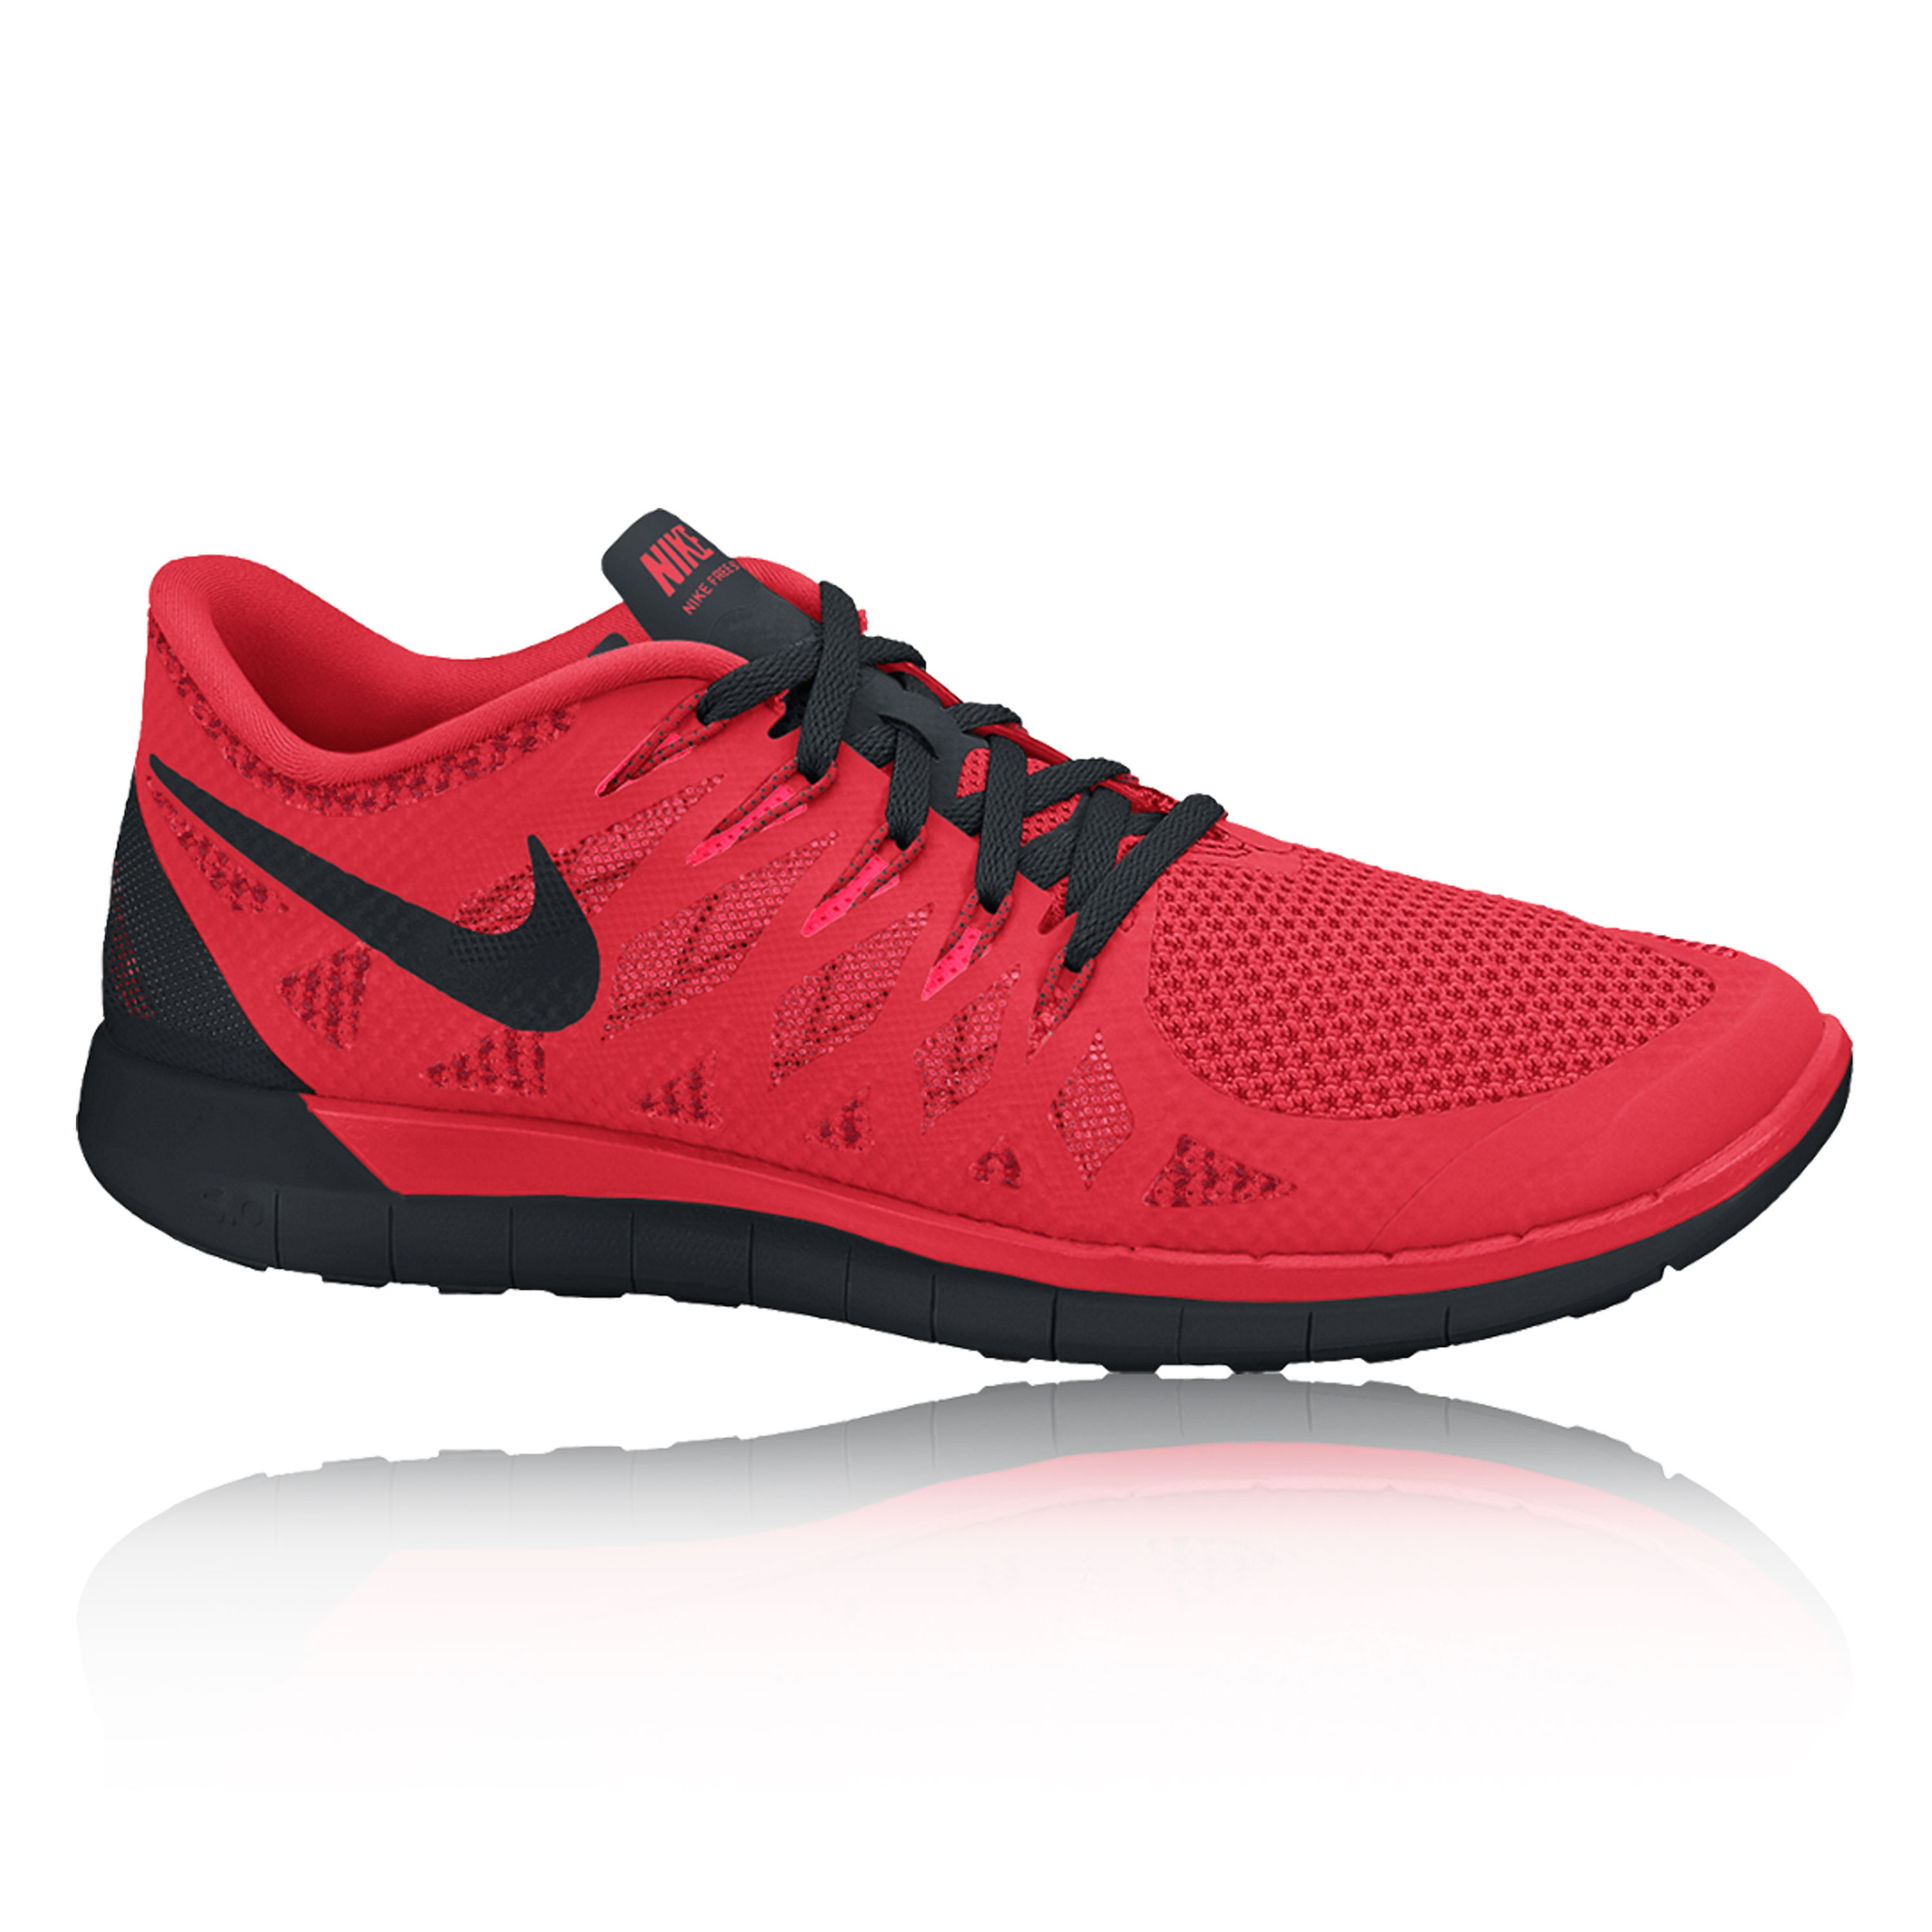 Nike Leggings Clothing and Accessories  Shoppingcom